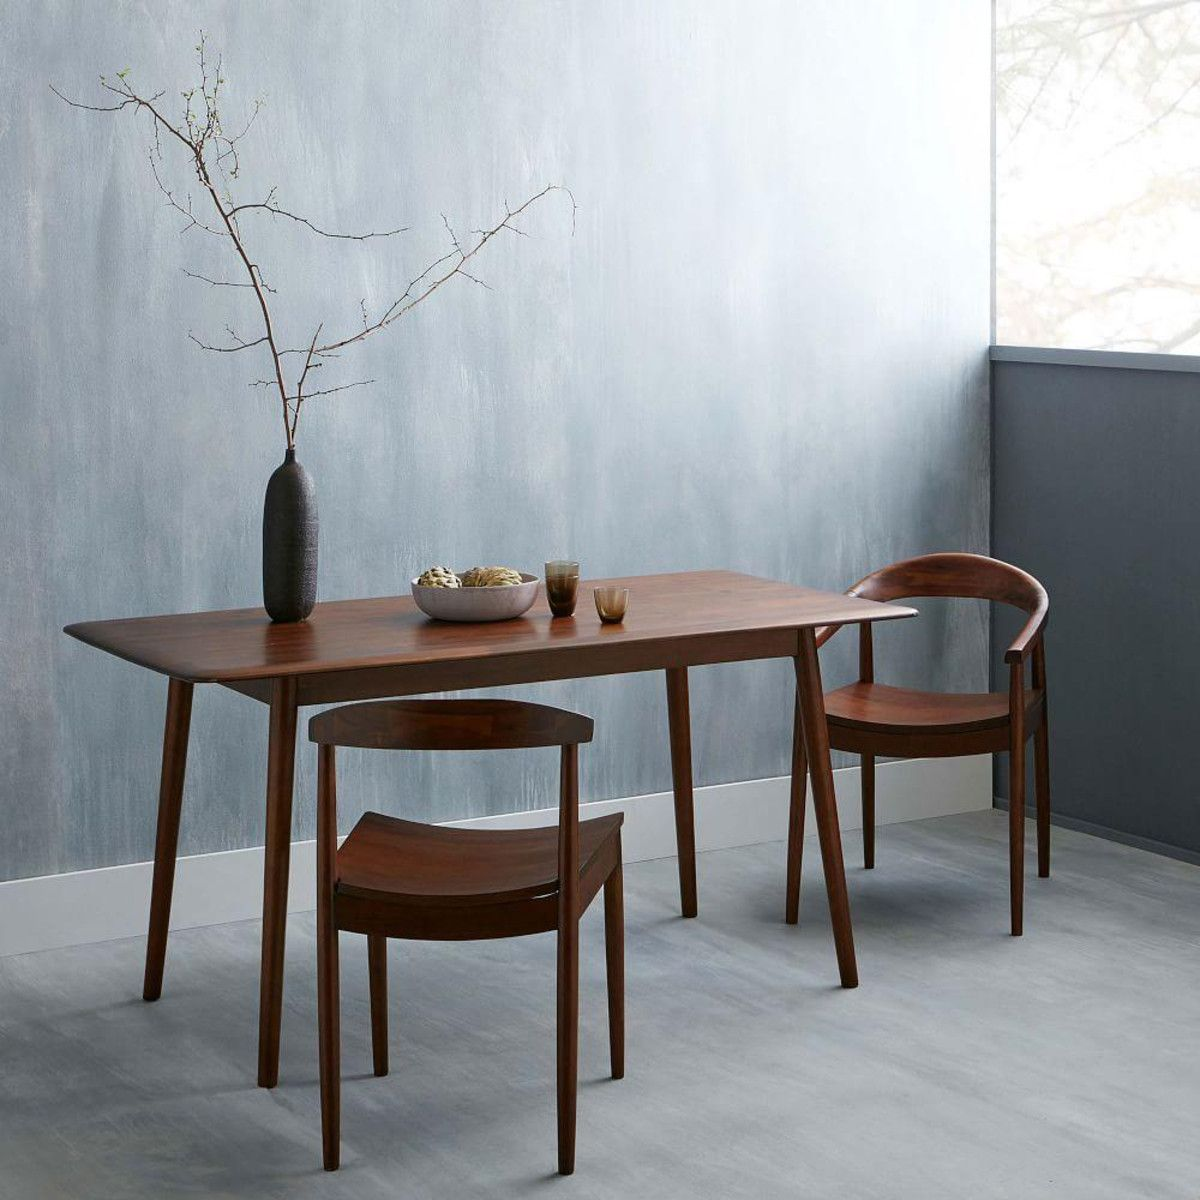 West Elm Lena Mid-Century Dining Table and Lena chairs - but at 76cm ...